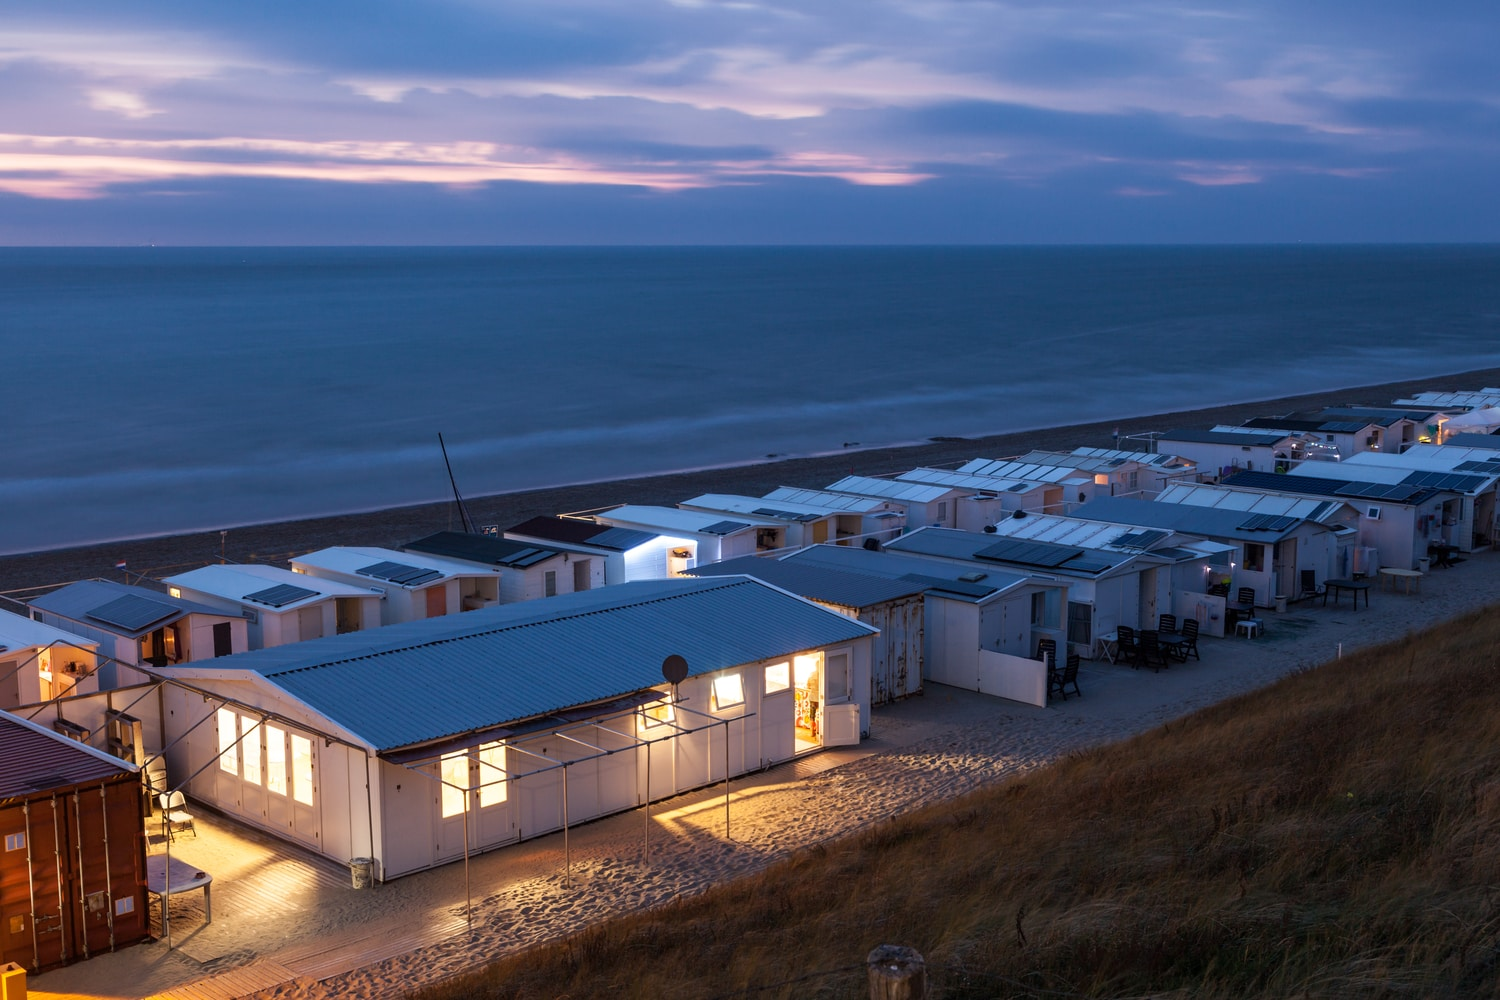 Holiday park with static caravans at night time